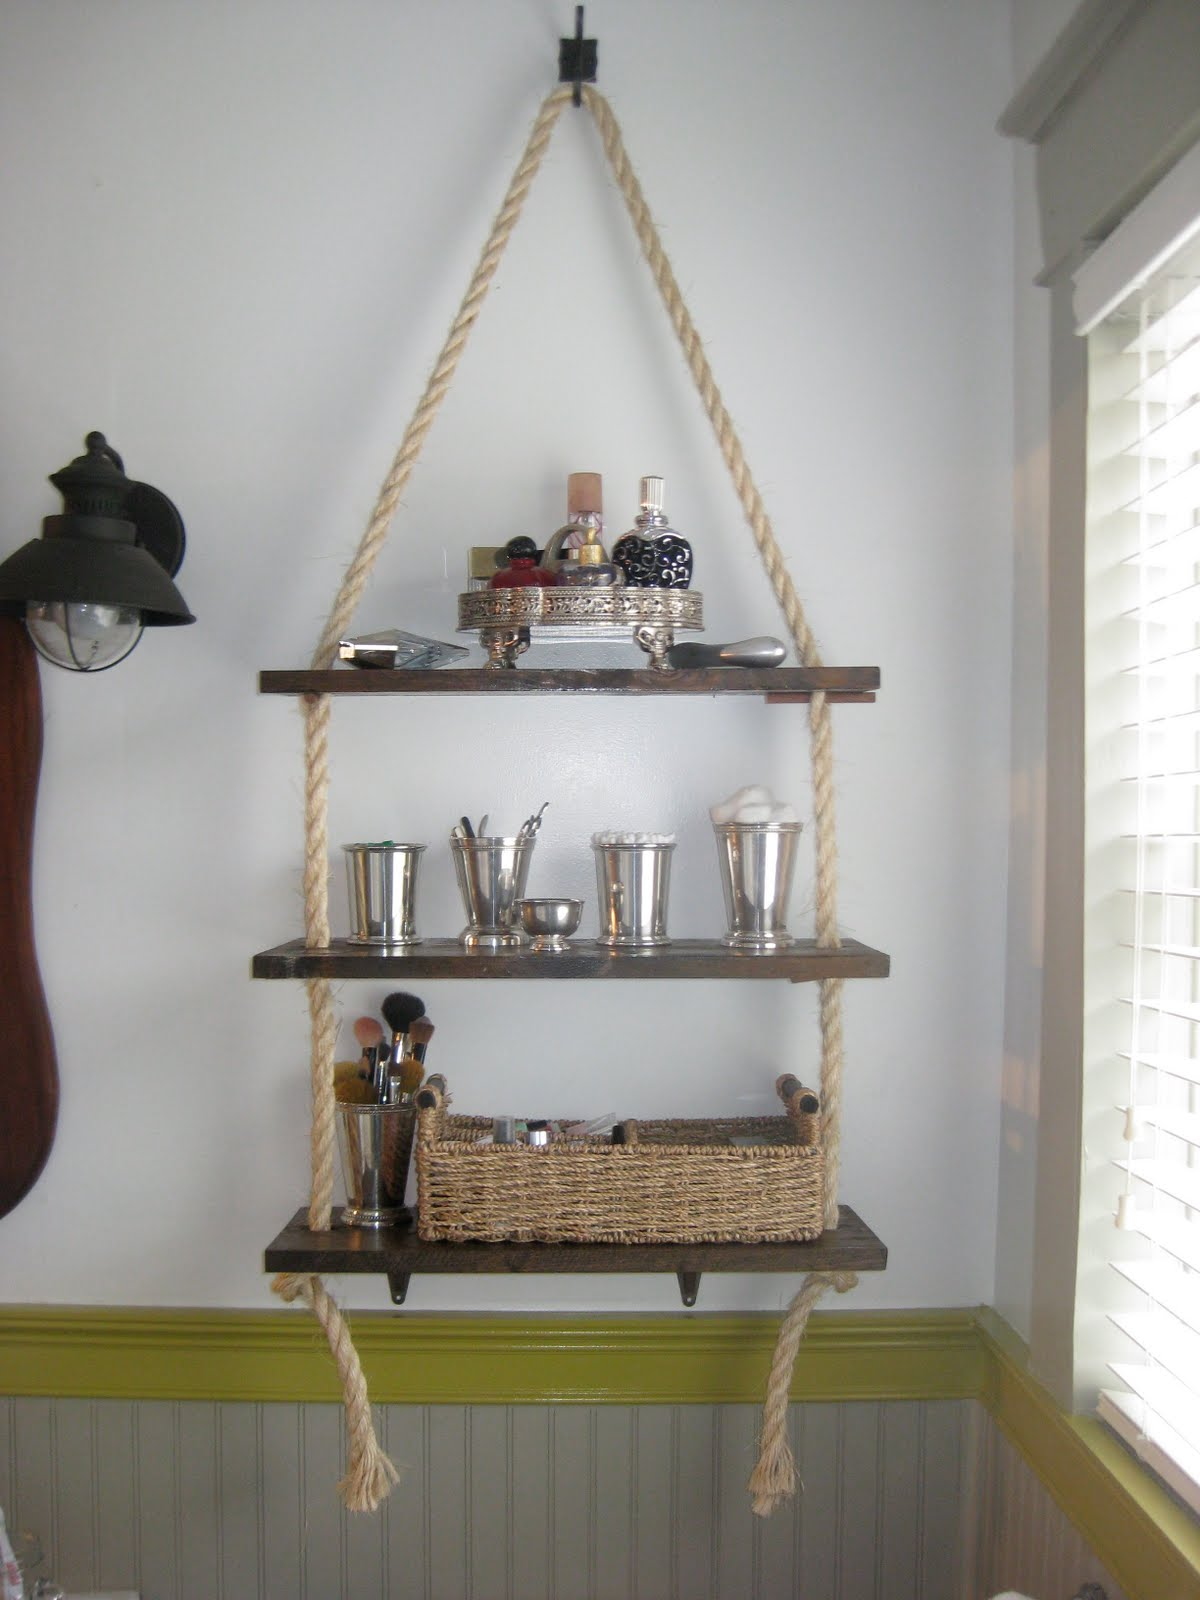 Plank and rope shelving